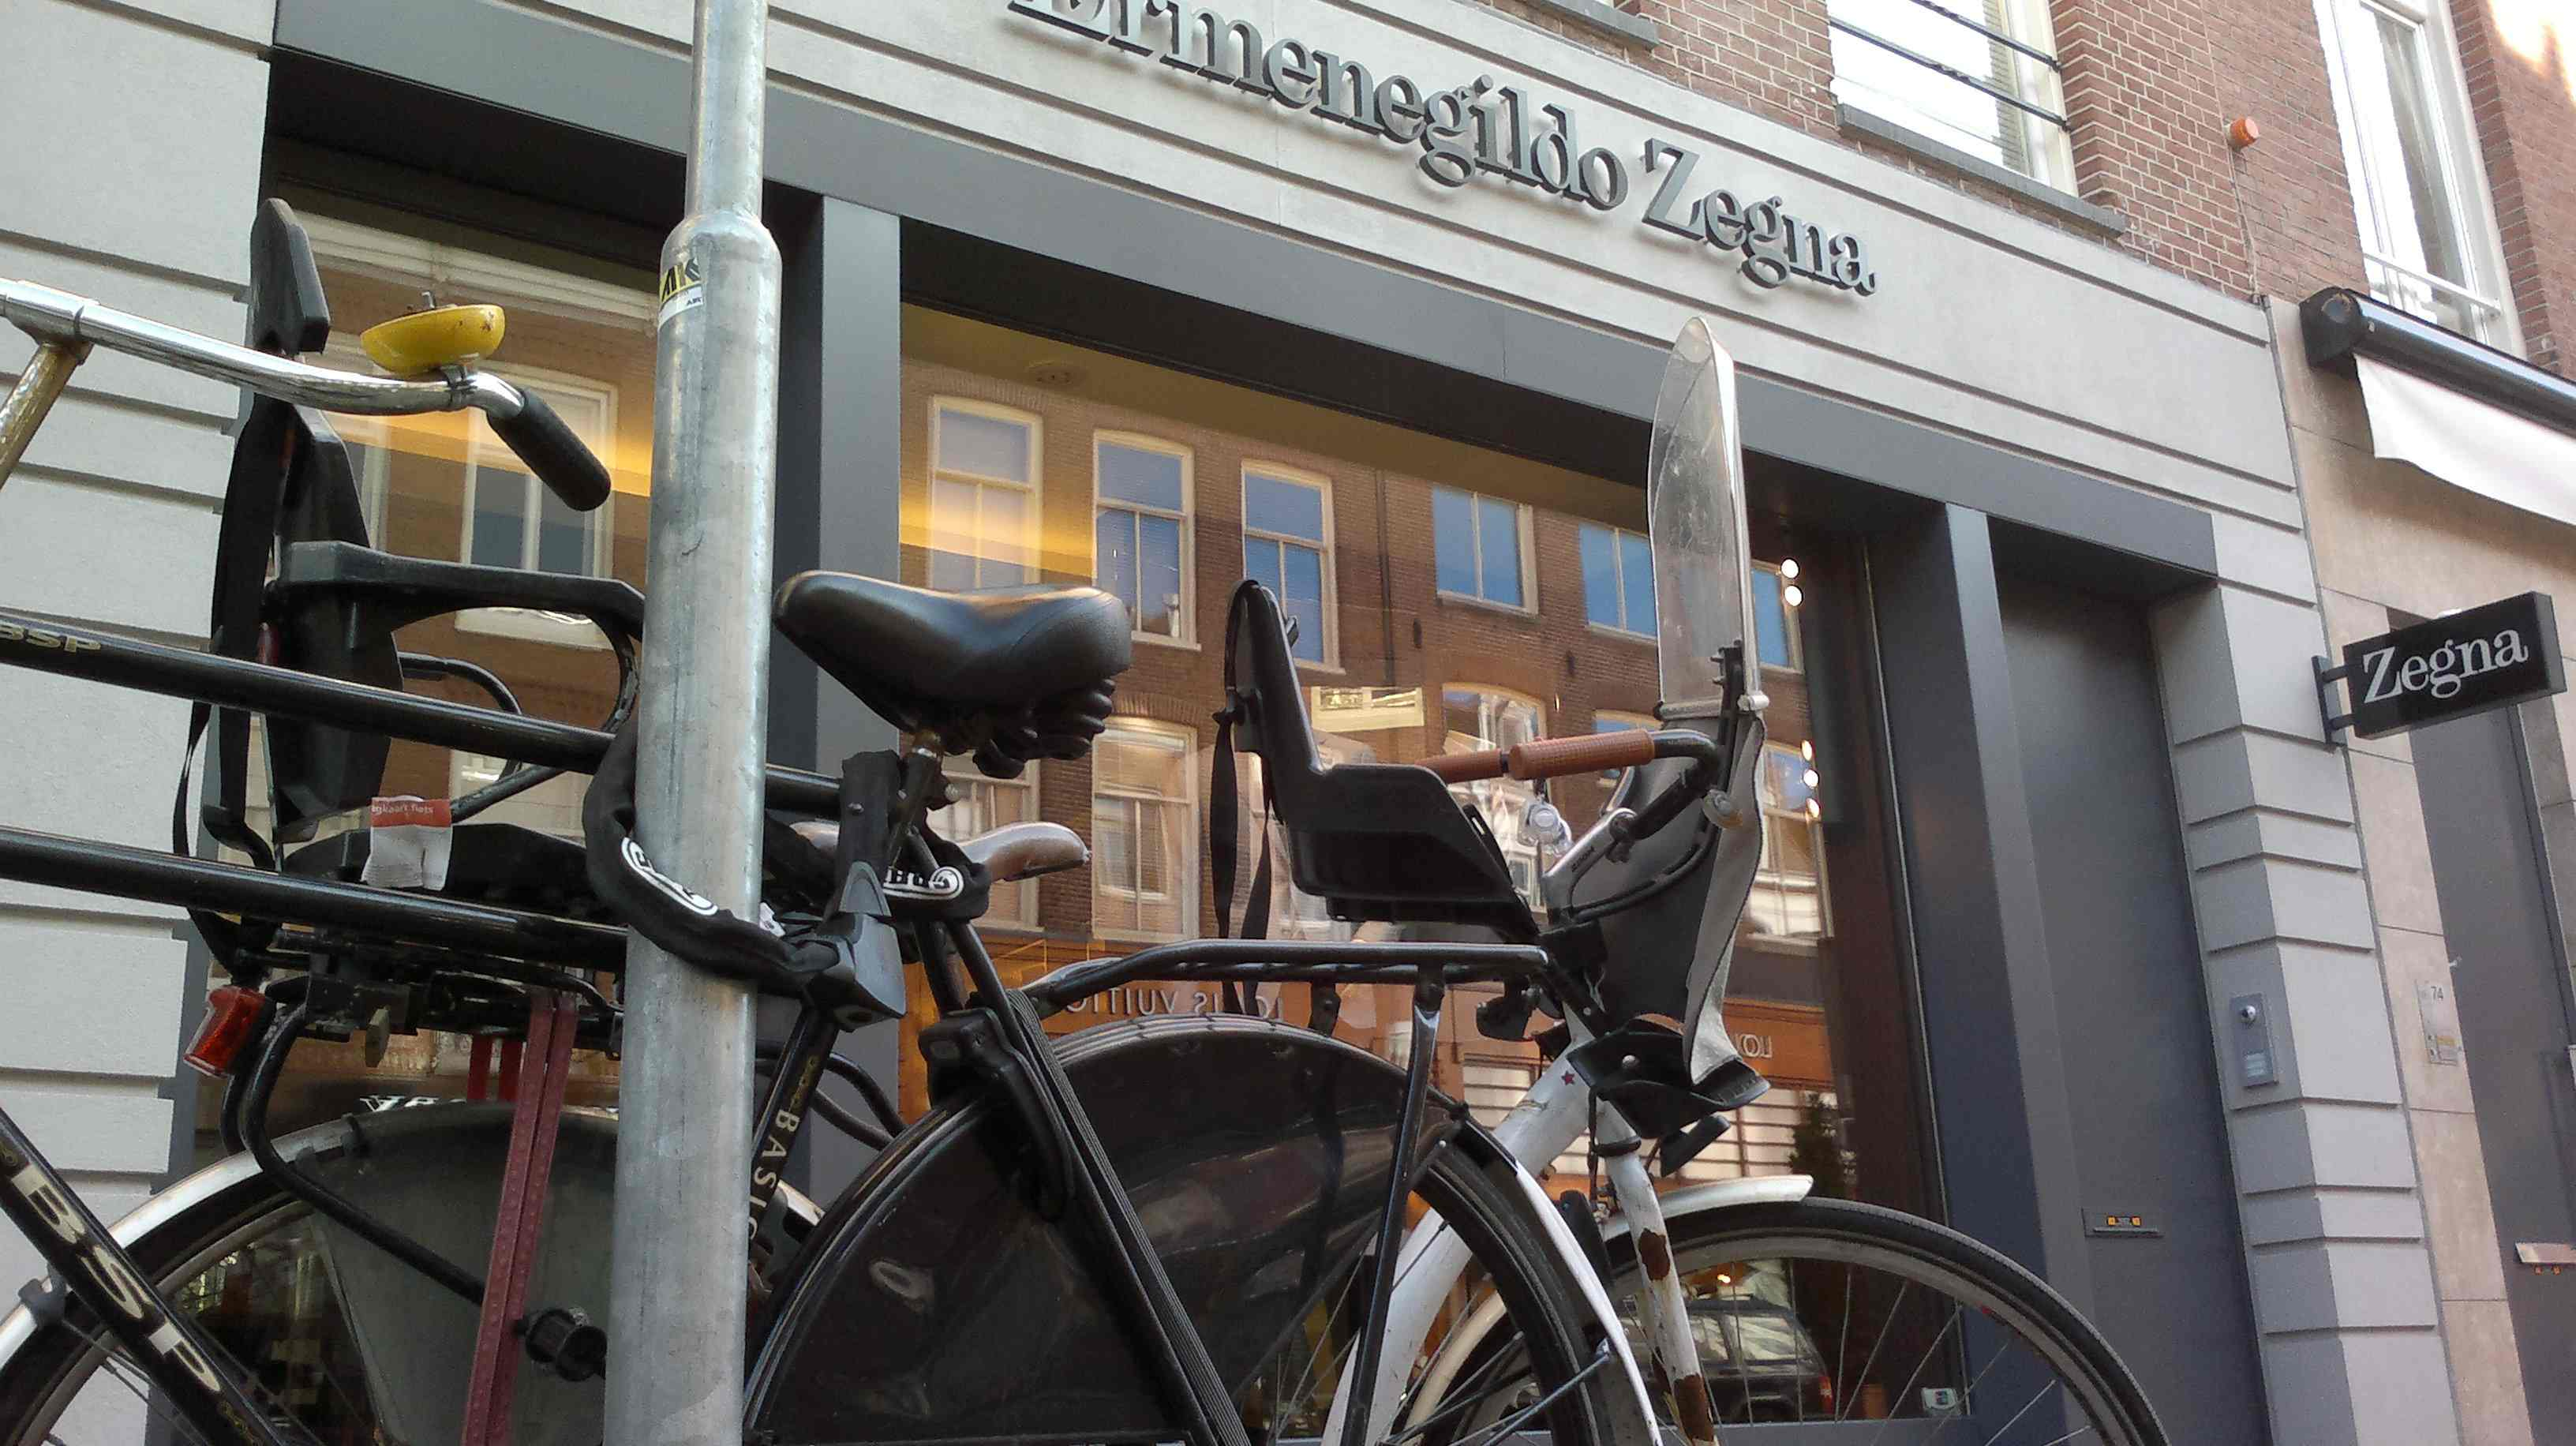 omabikes and Zegna